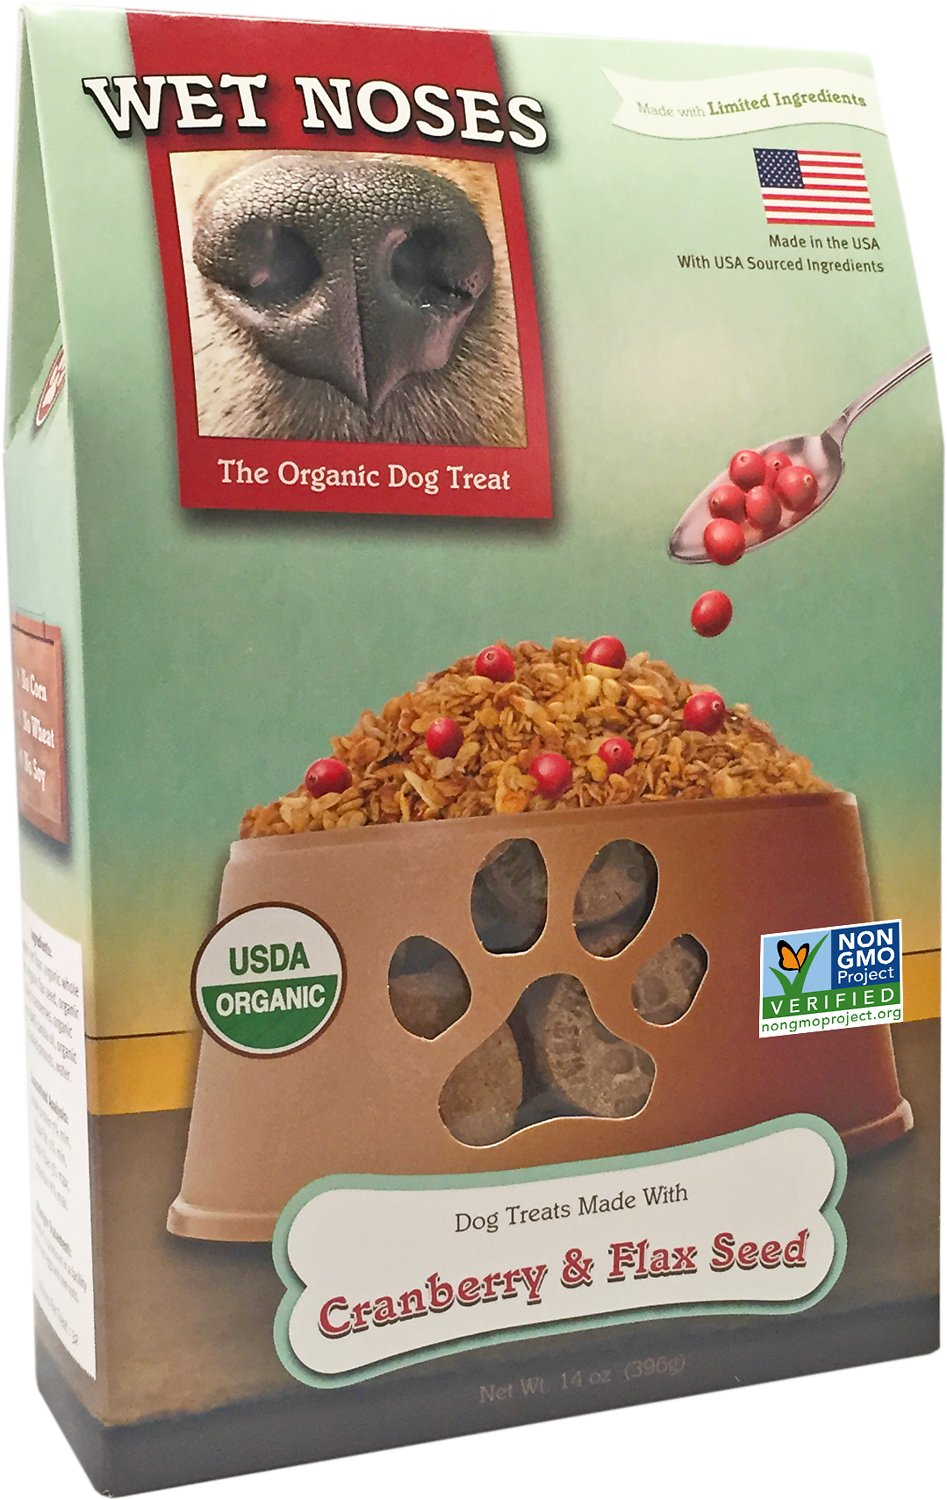 Wet Noses Cranberry & Flax Seed Dog Treats